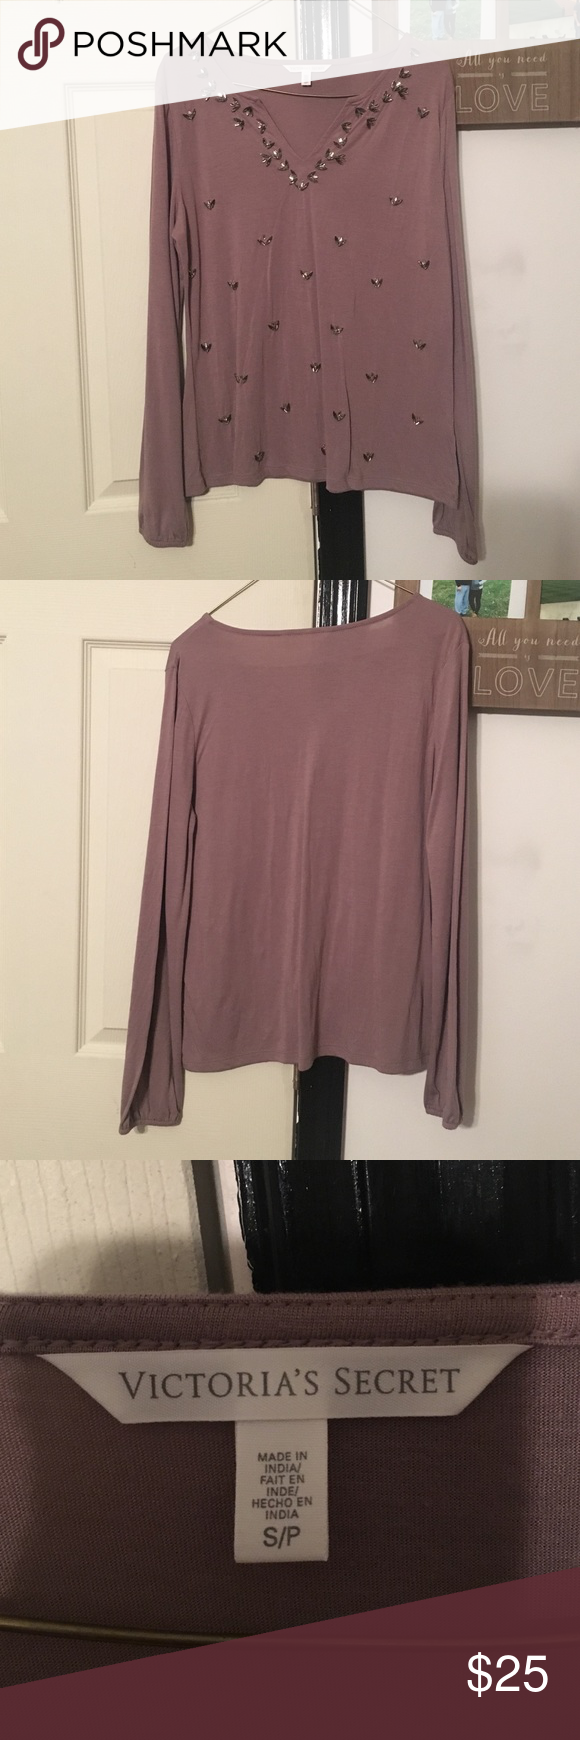 VS Long Sleeve Shirt Purple/muave colored, long sleeve top. Beading on front. Comfortable & loose fitting. New condition, worn once. Victoria's Secret Tops Tees - Long Sleeve